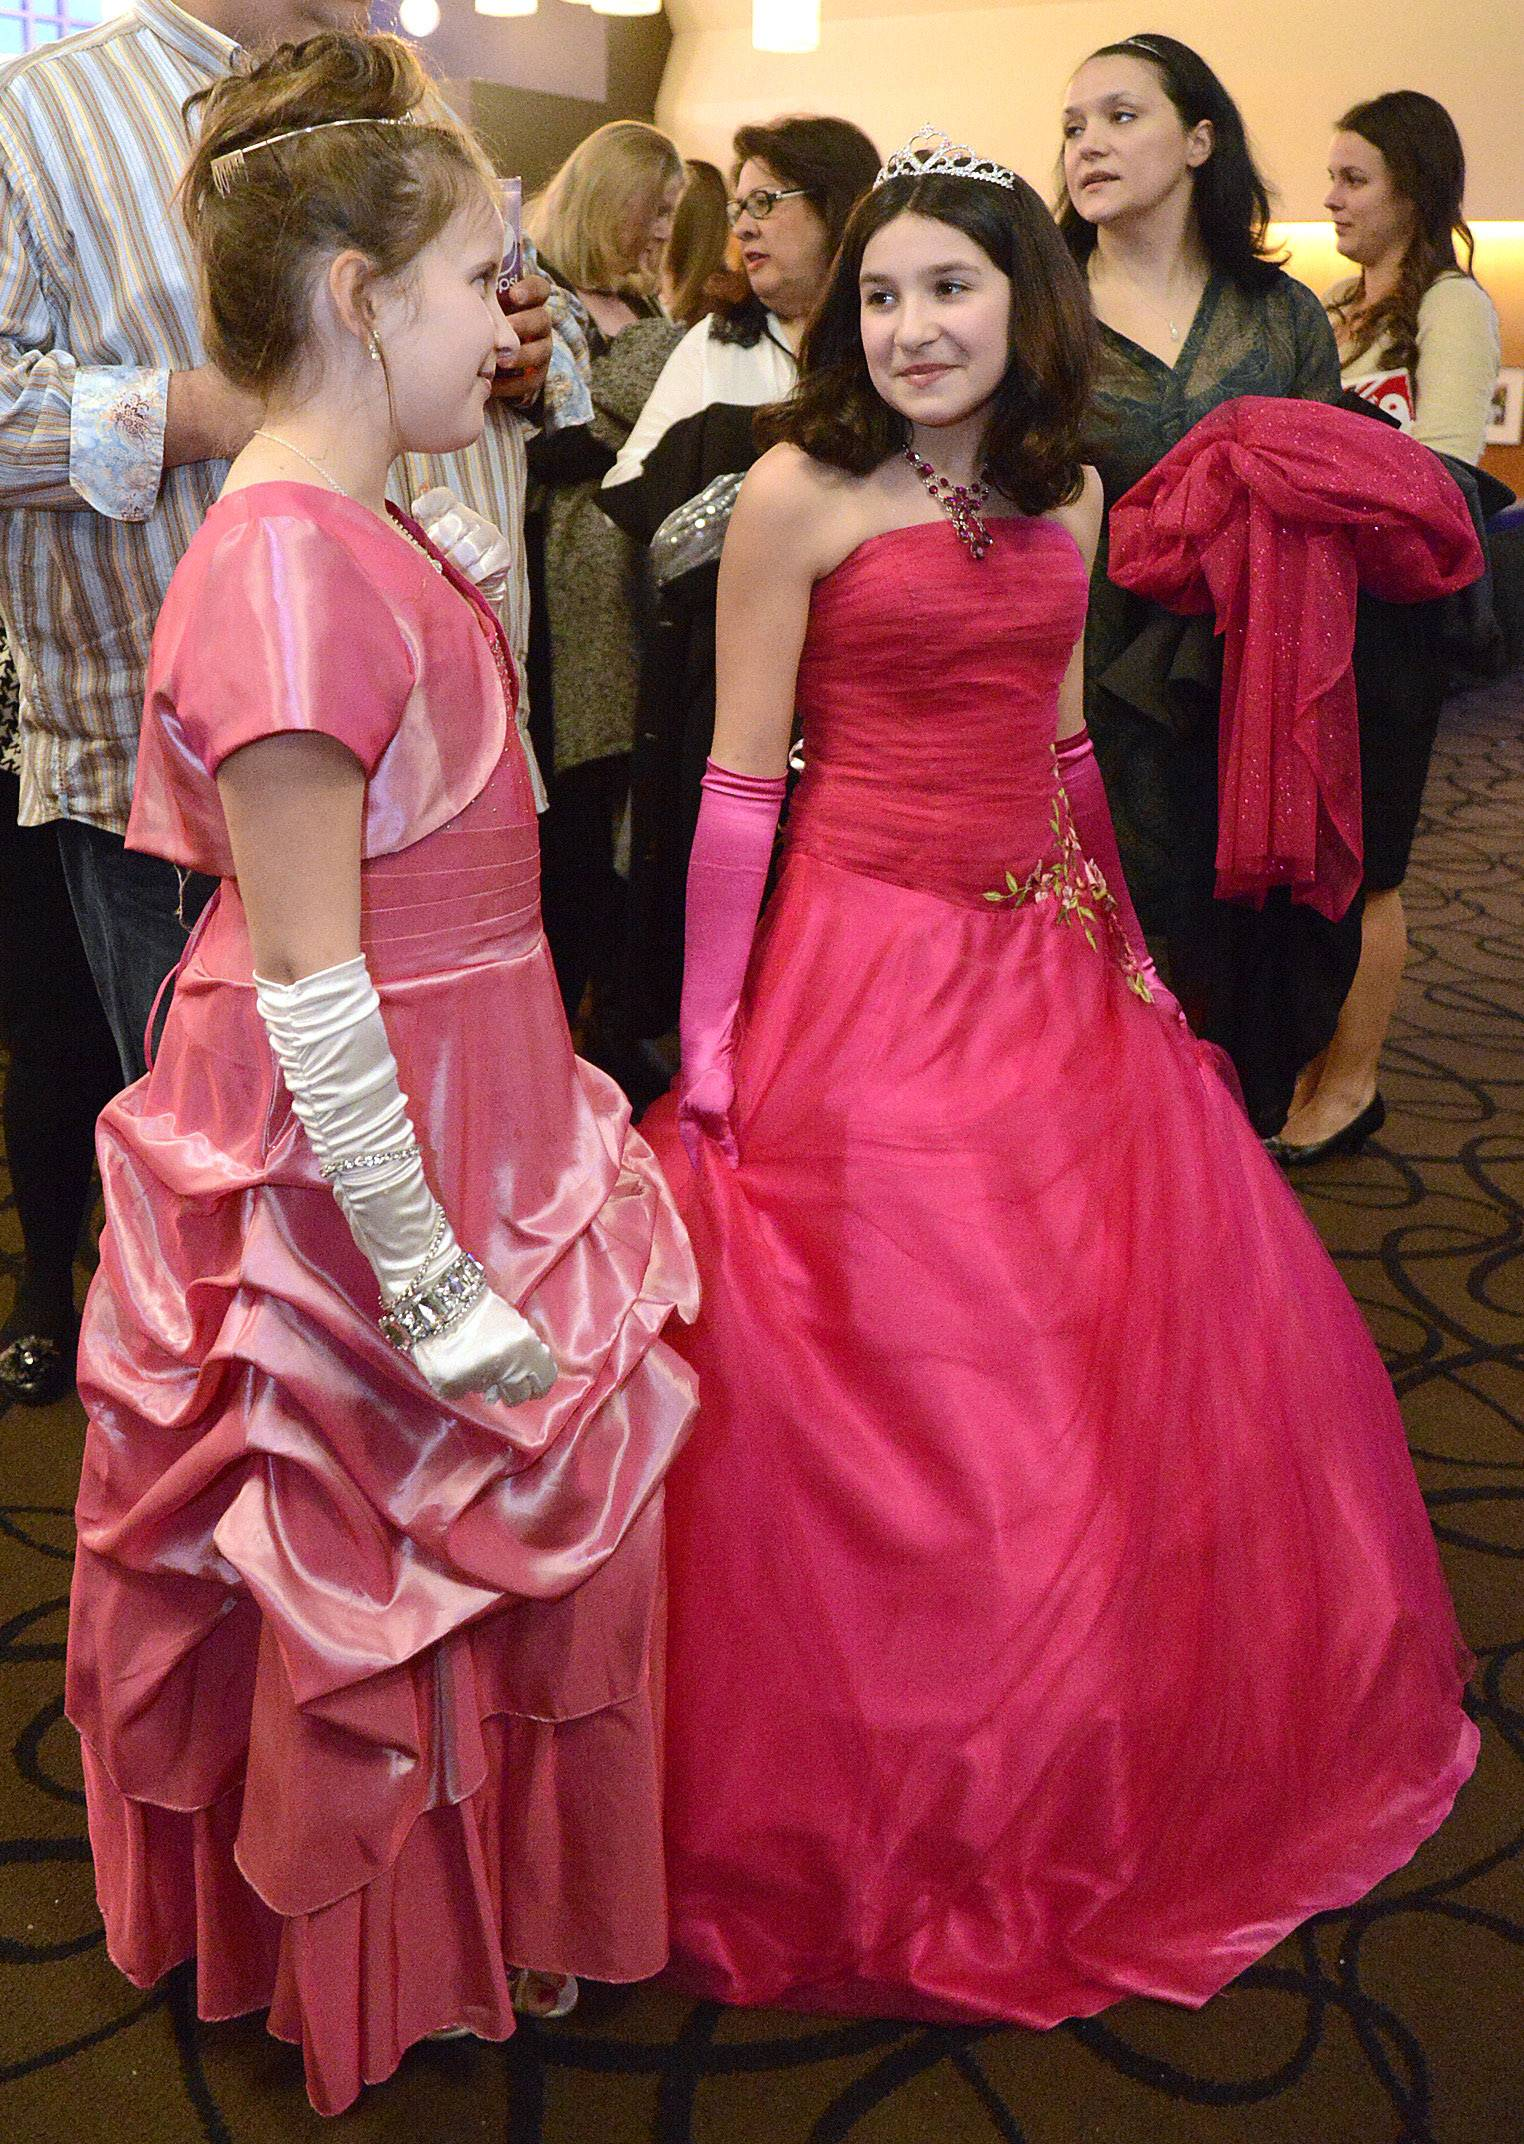 Best friends Sydney Cox and Gianna Danno, both 11 and from Channahon, dressed up special Sunday to watch the 86th Academy Awards at Studio Movie Grill in Wheaton.